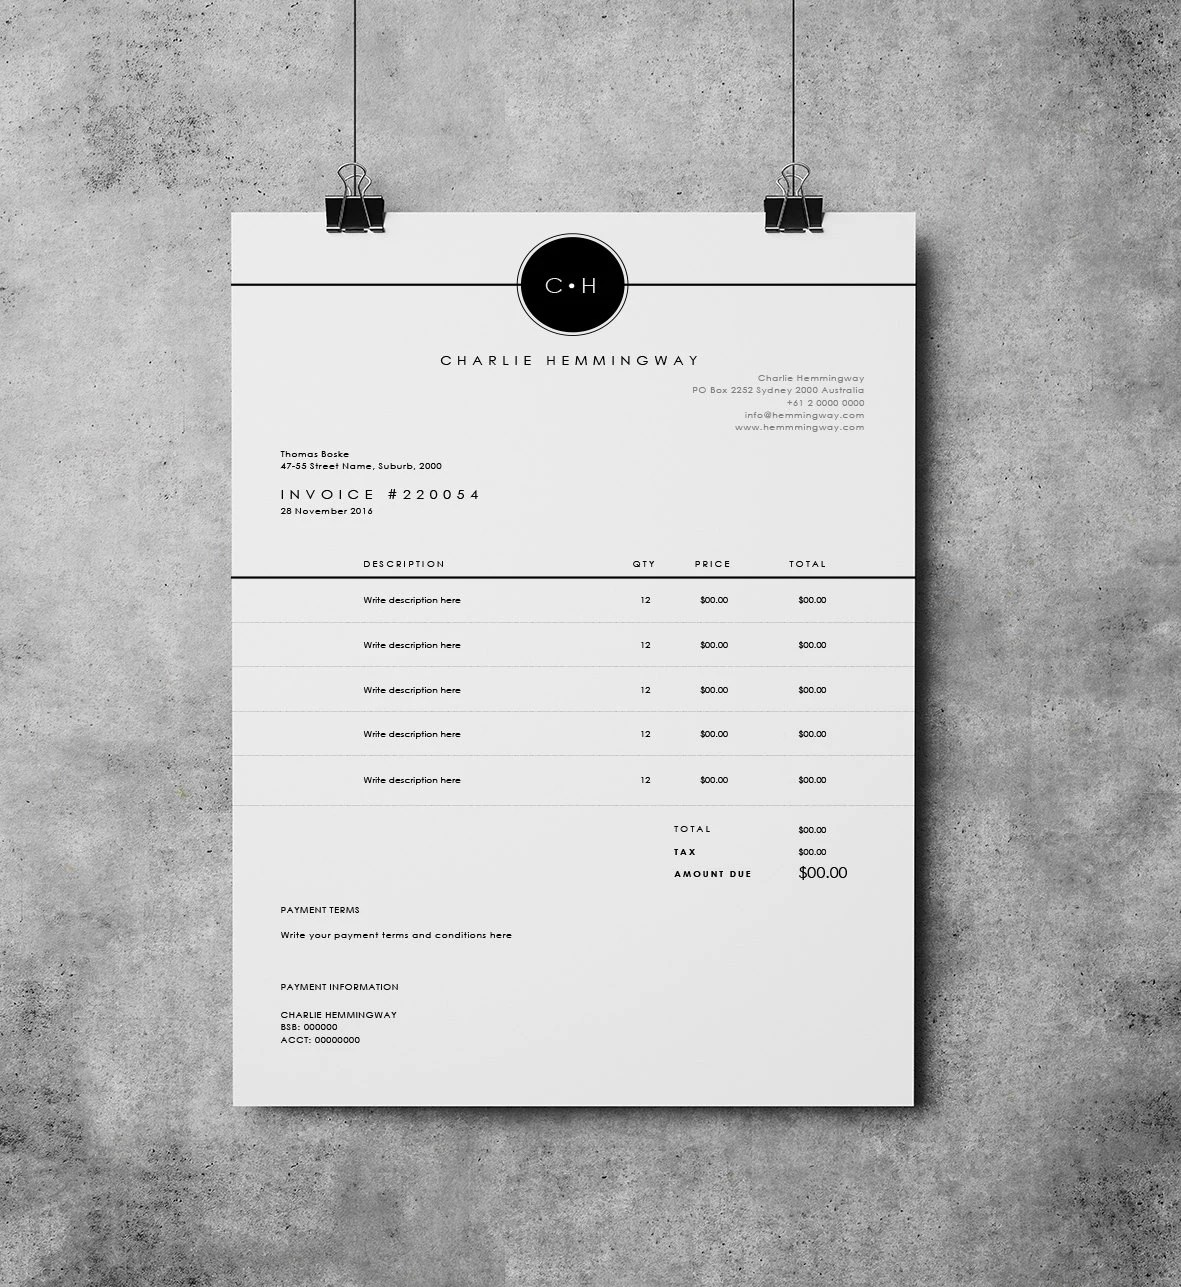 Rental Receipt Printable Receipt Template Excel For Use And     Invoice Template Invoice Design Receipt MS Word Invoice   Free printable  invoice templates word american girl